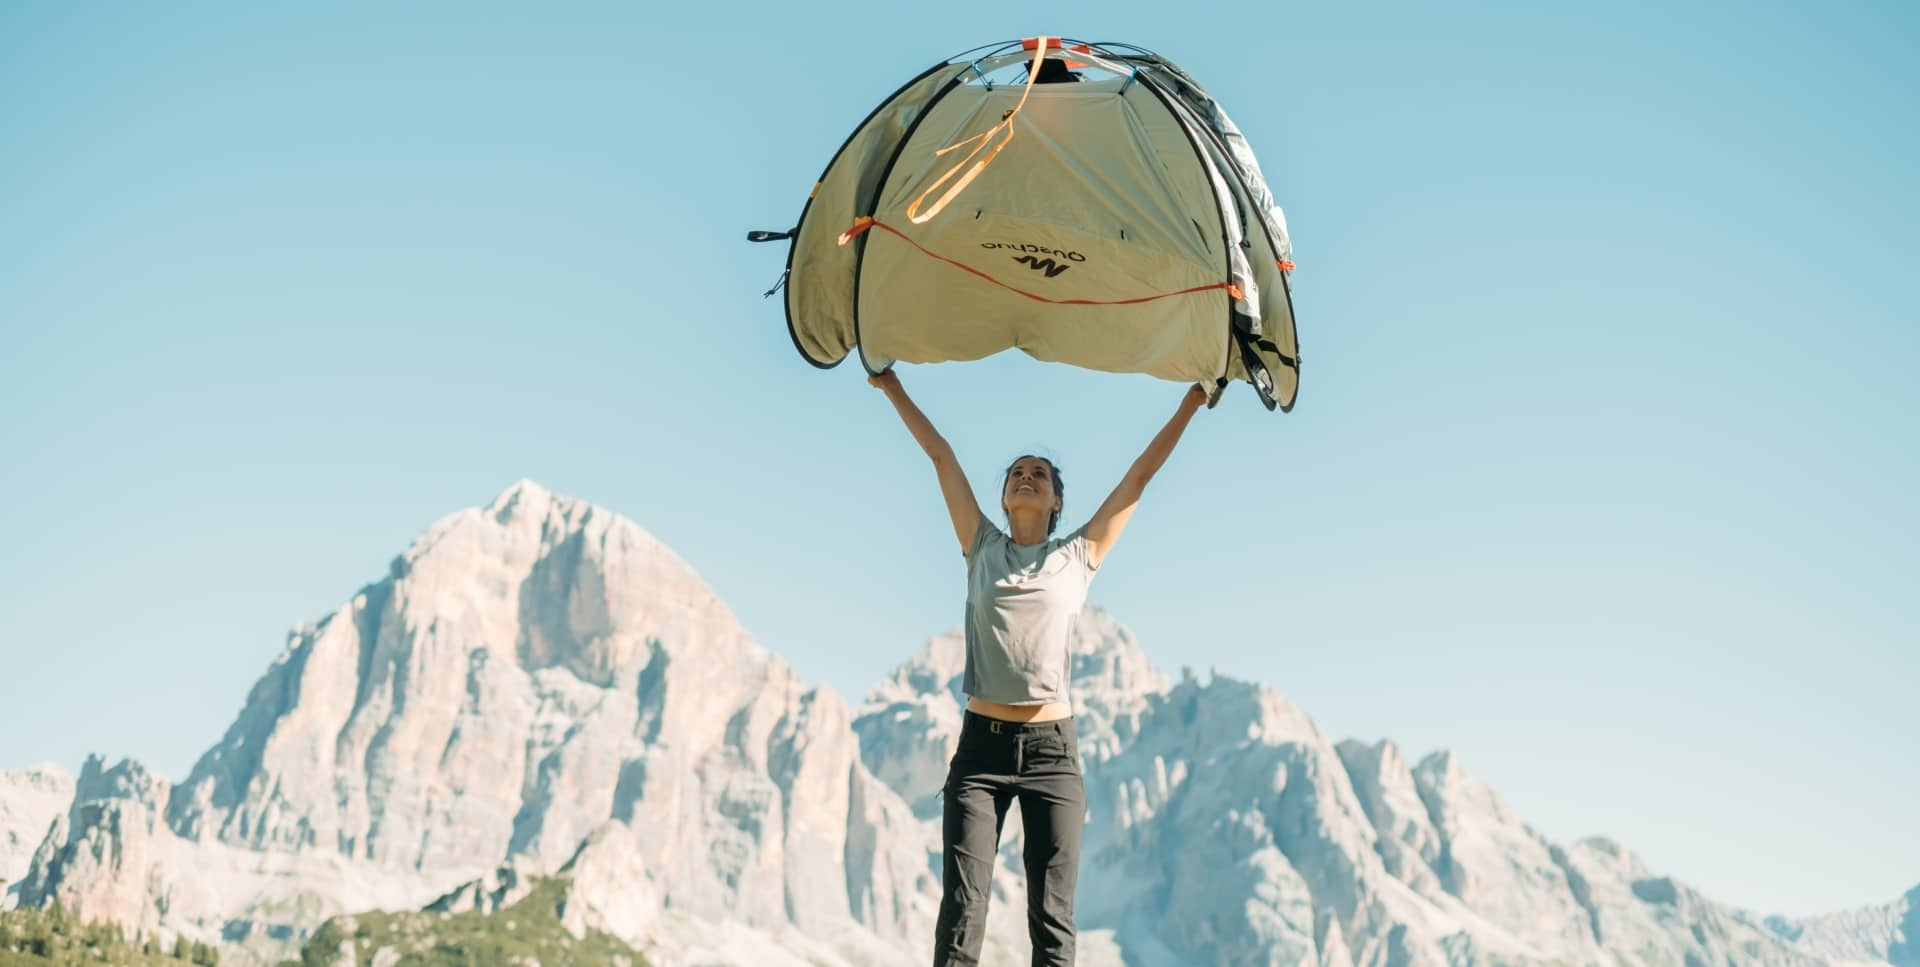 Quechua 2 Second Pop-Up Instant Tent - the best pop up tent of the year